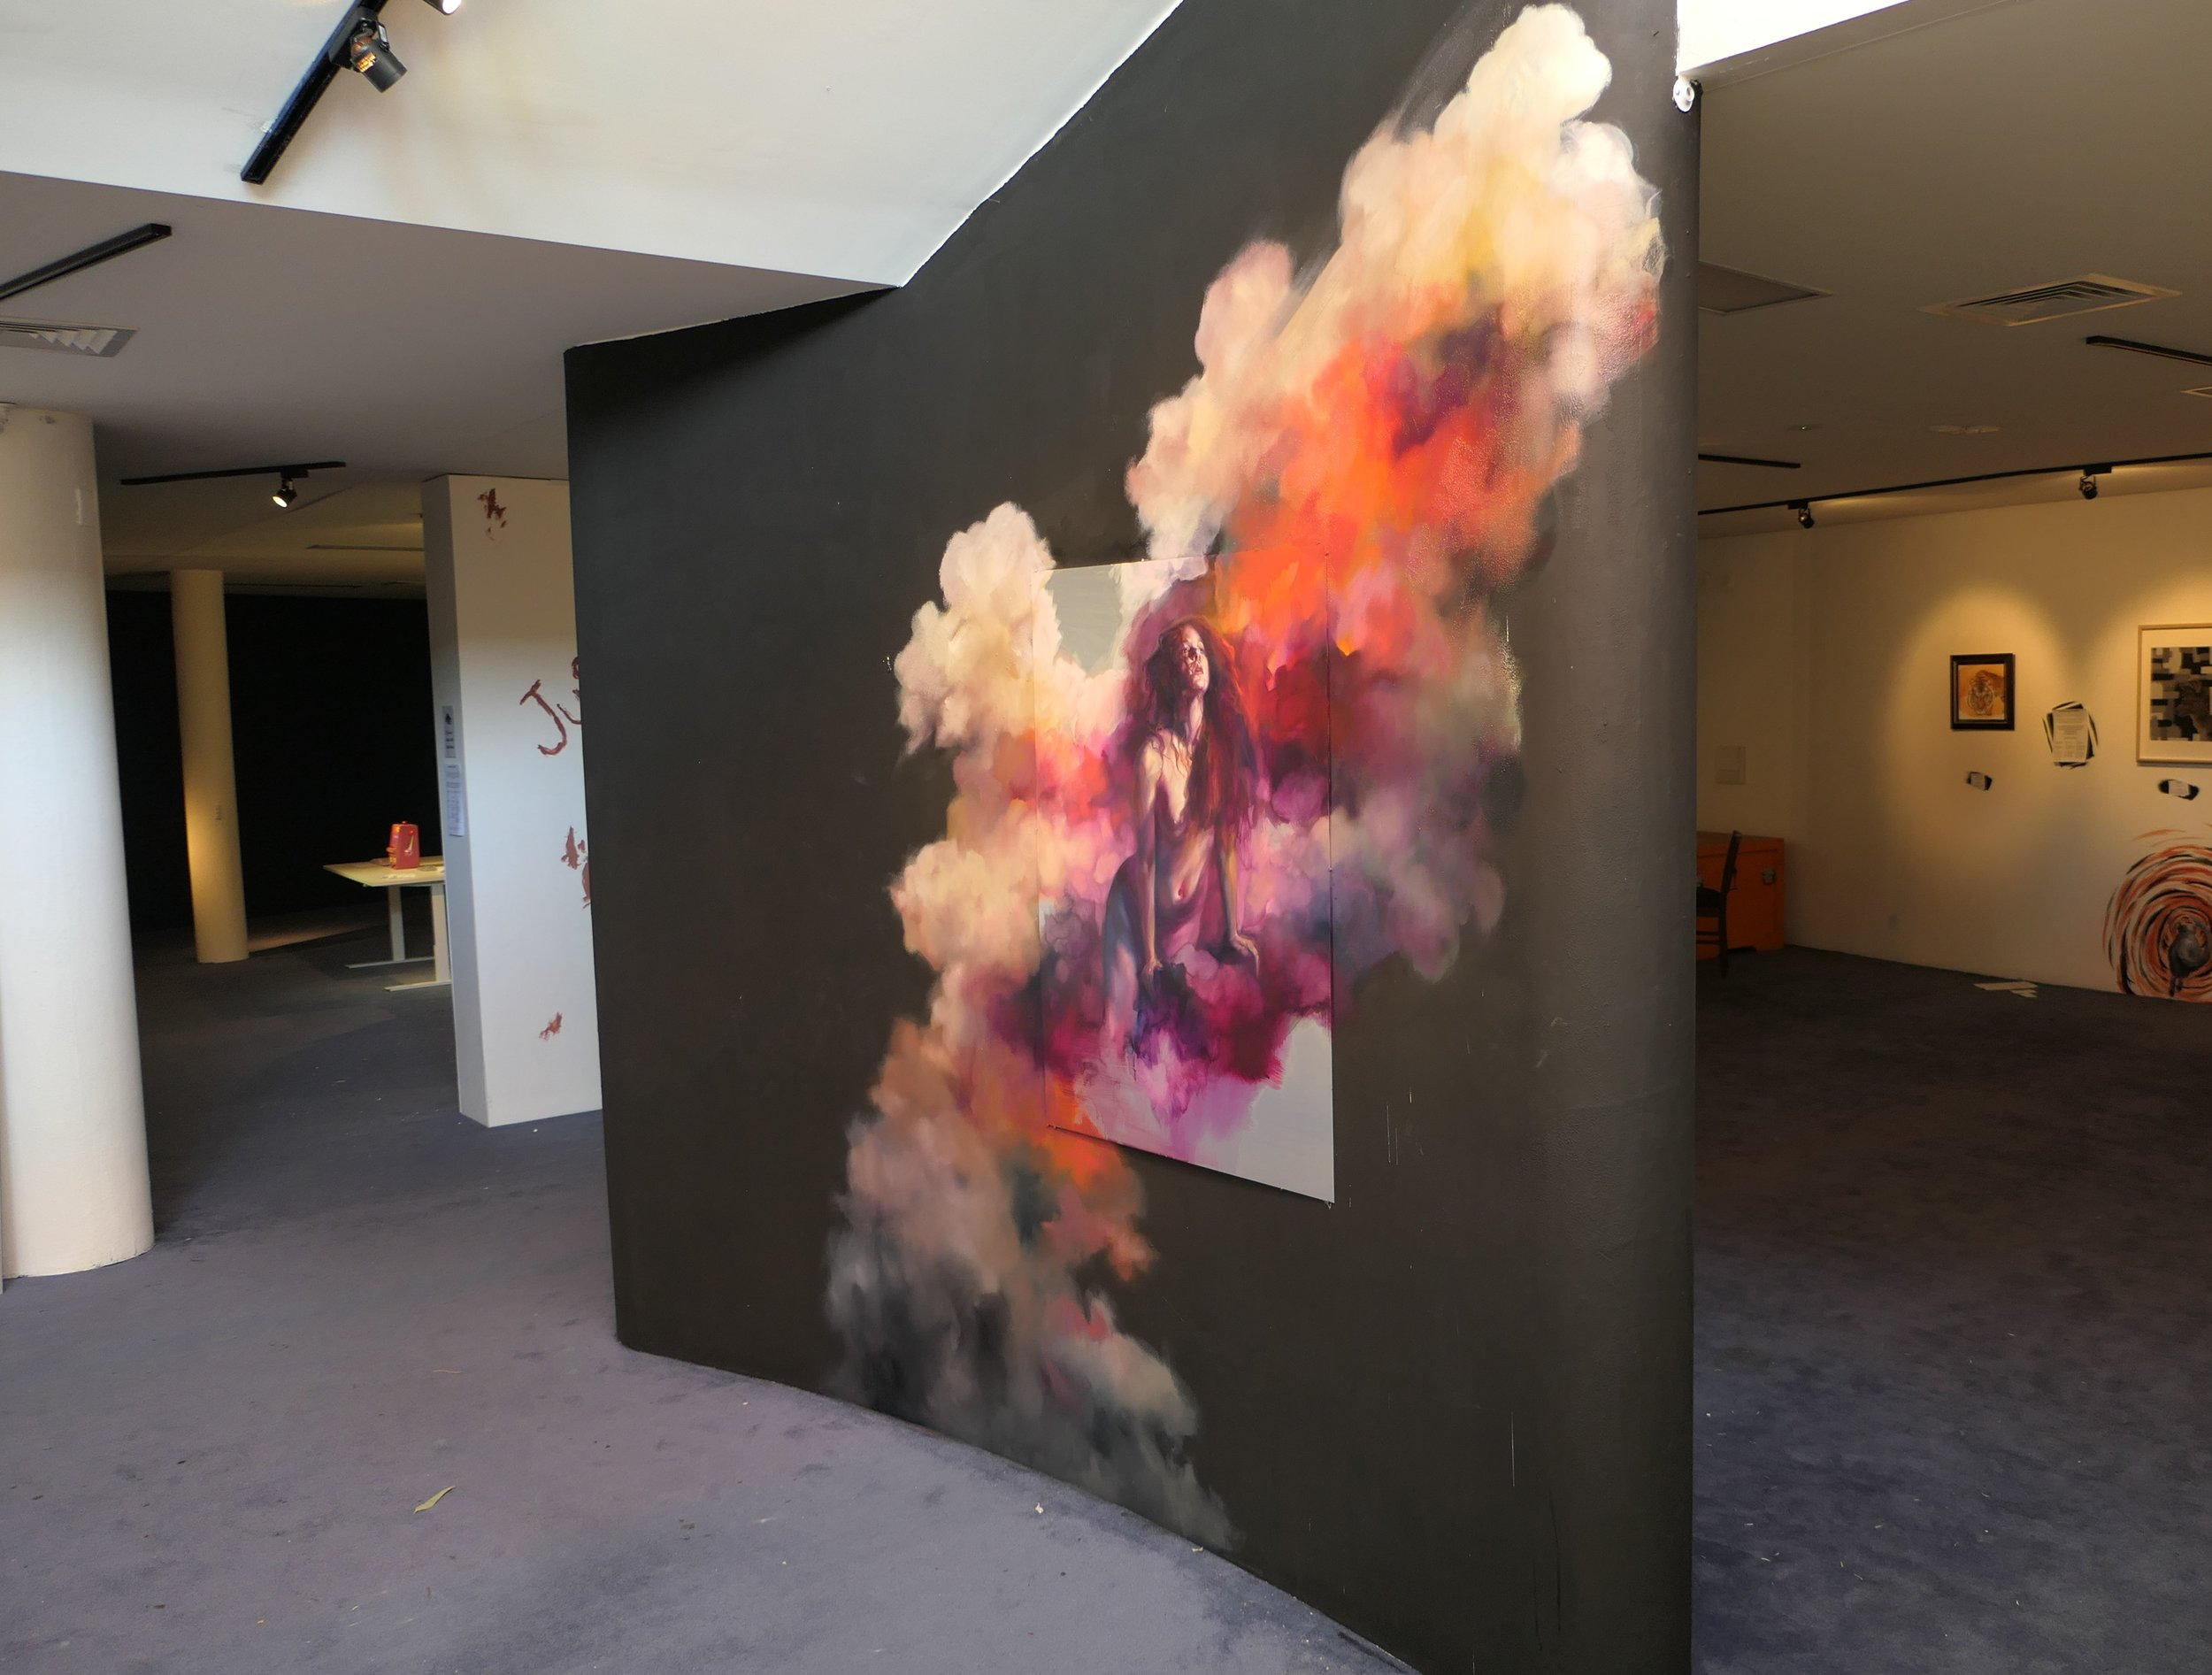 Liz Gridley used the gallery wall as her canvas.